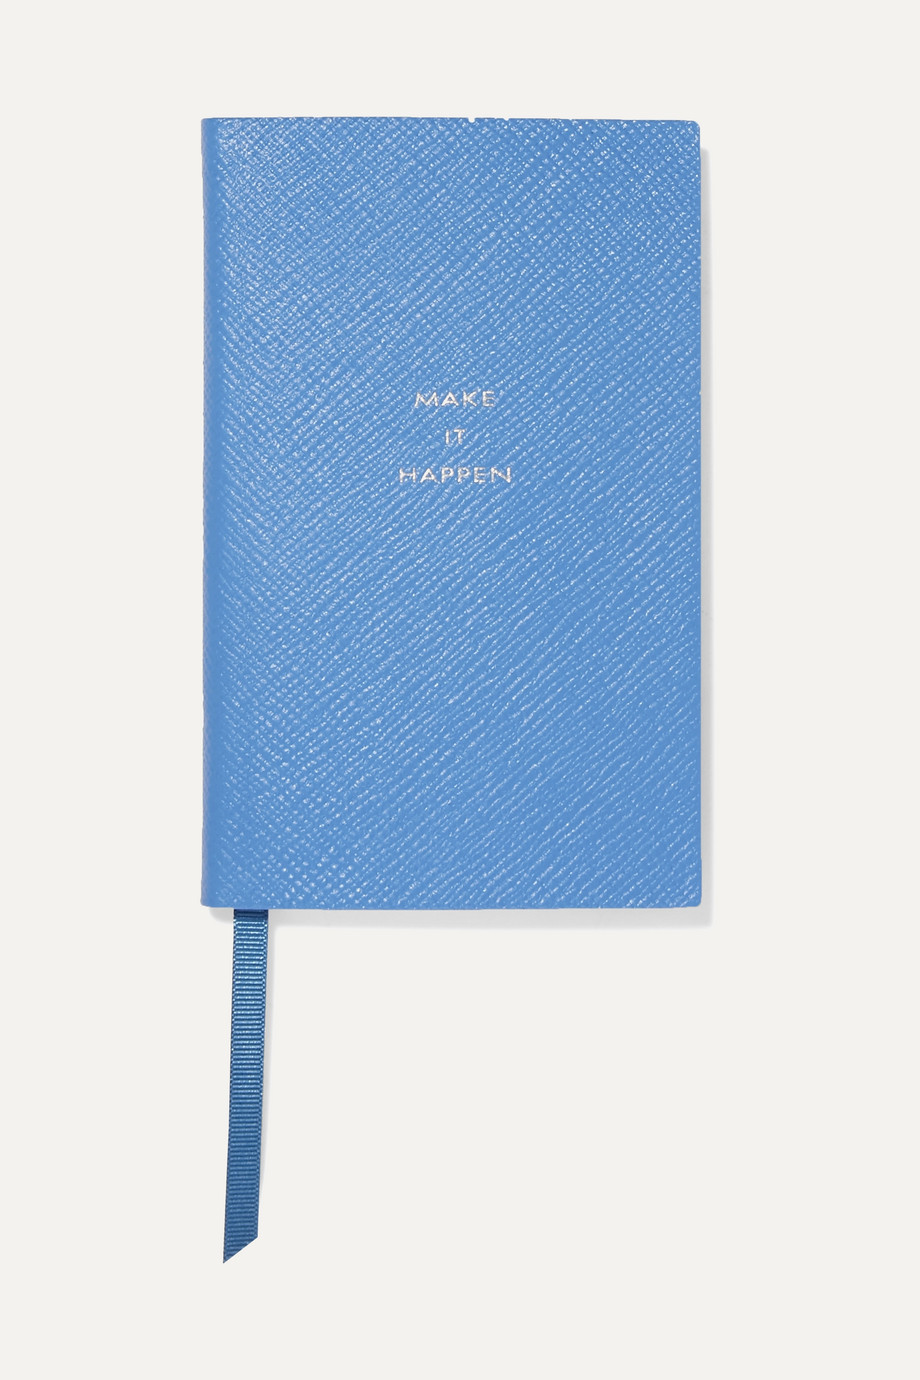 Smythson Panama Make It Happen textured-leather notebook